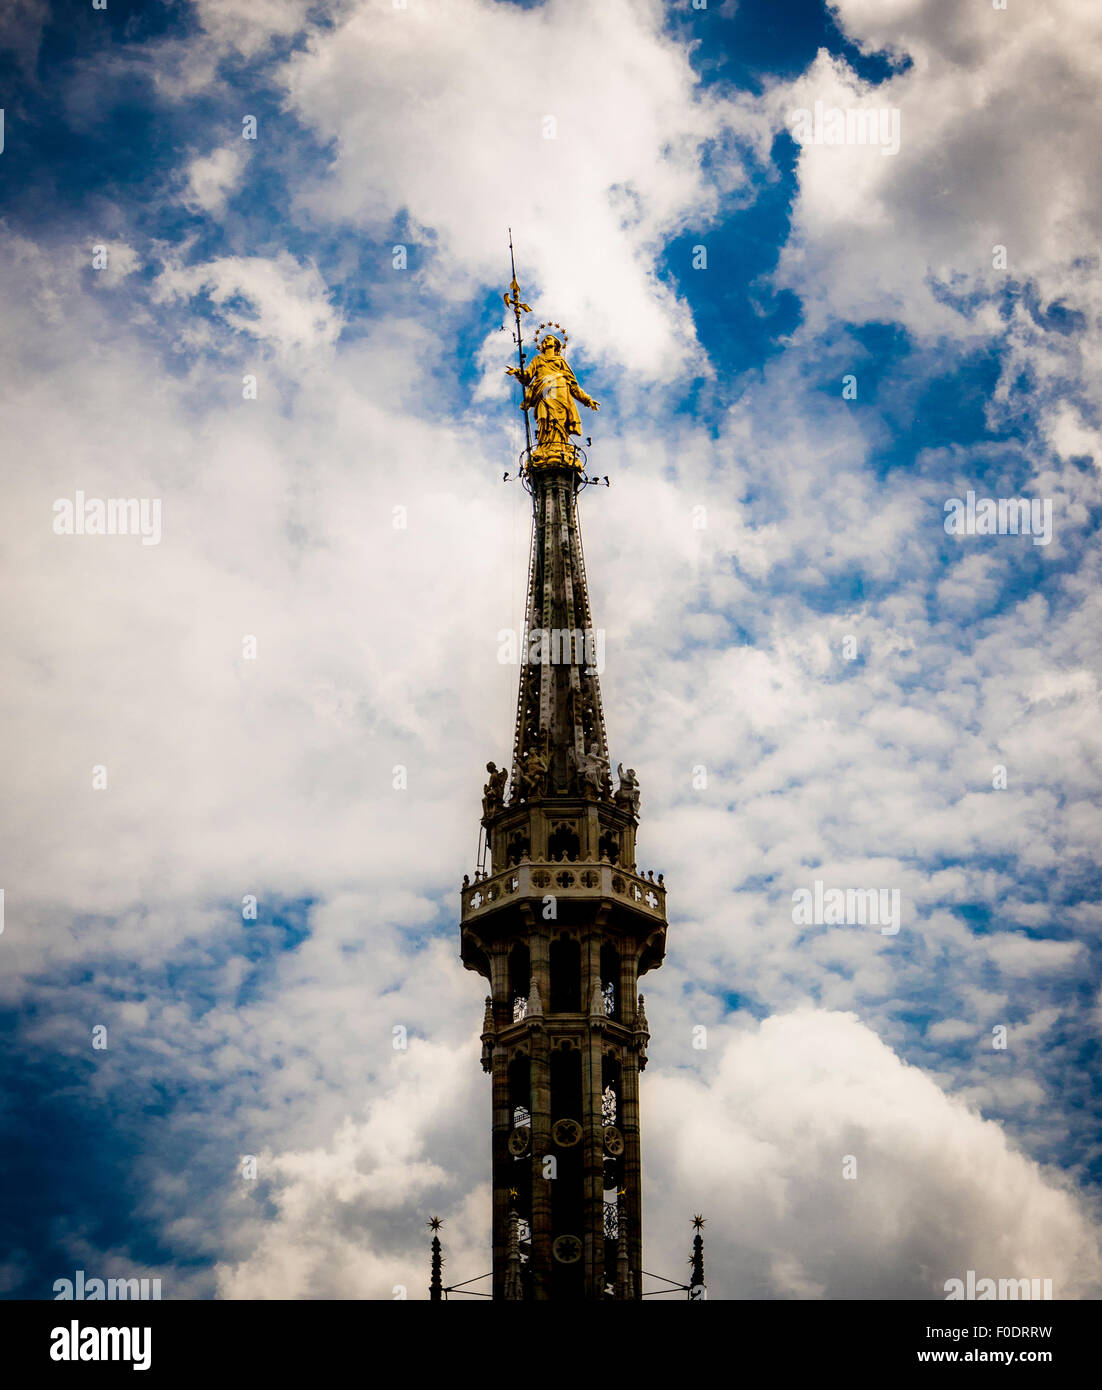 Spire with statue of Virgin Mary. Milan Cathedral. Italy - Stock Image